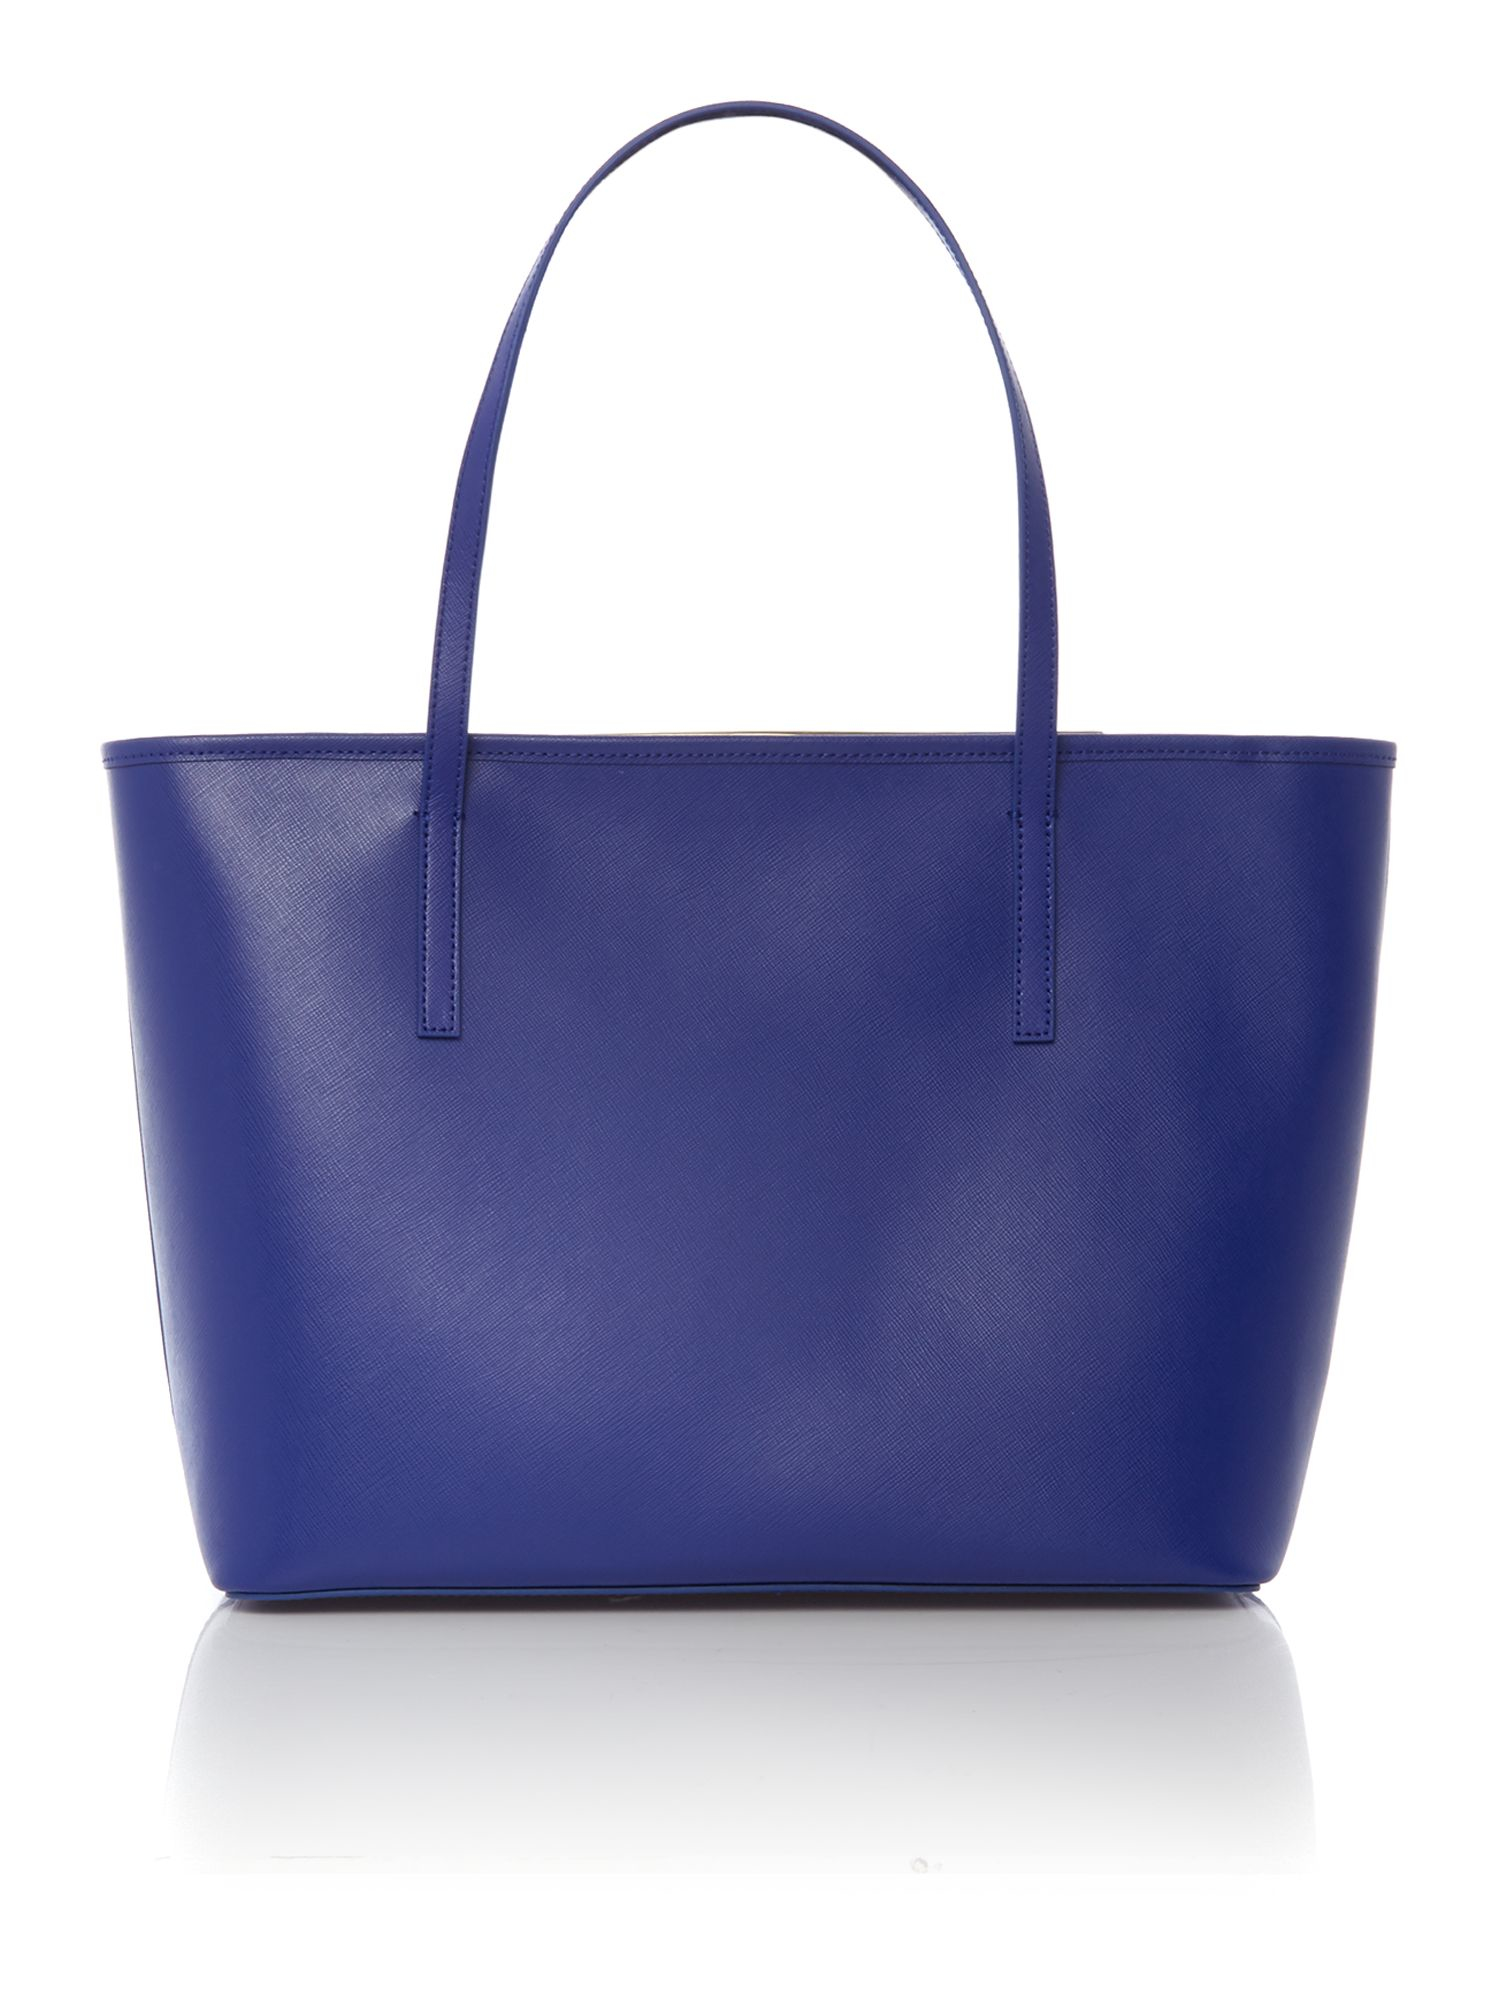 Ted Baker Leather Alanis Black Saffiano Tote Bag With Clutch in Blue